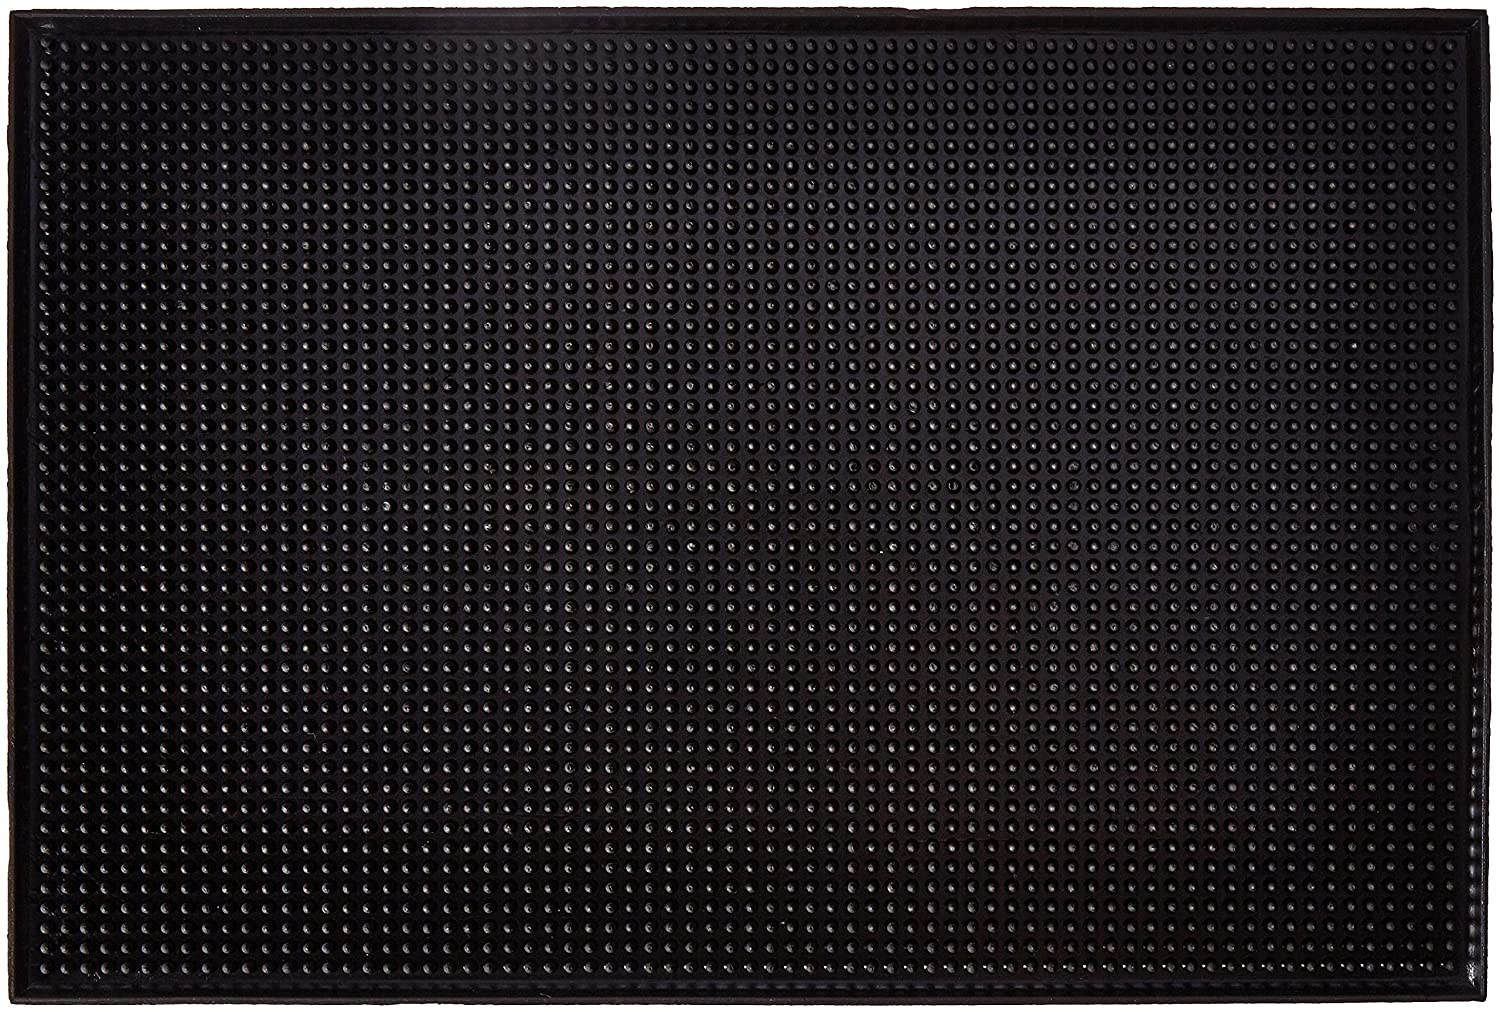 New Star Foodservice 48421 Rubber Bar Service Mat, 12-Inch by 18-Inch